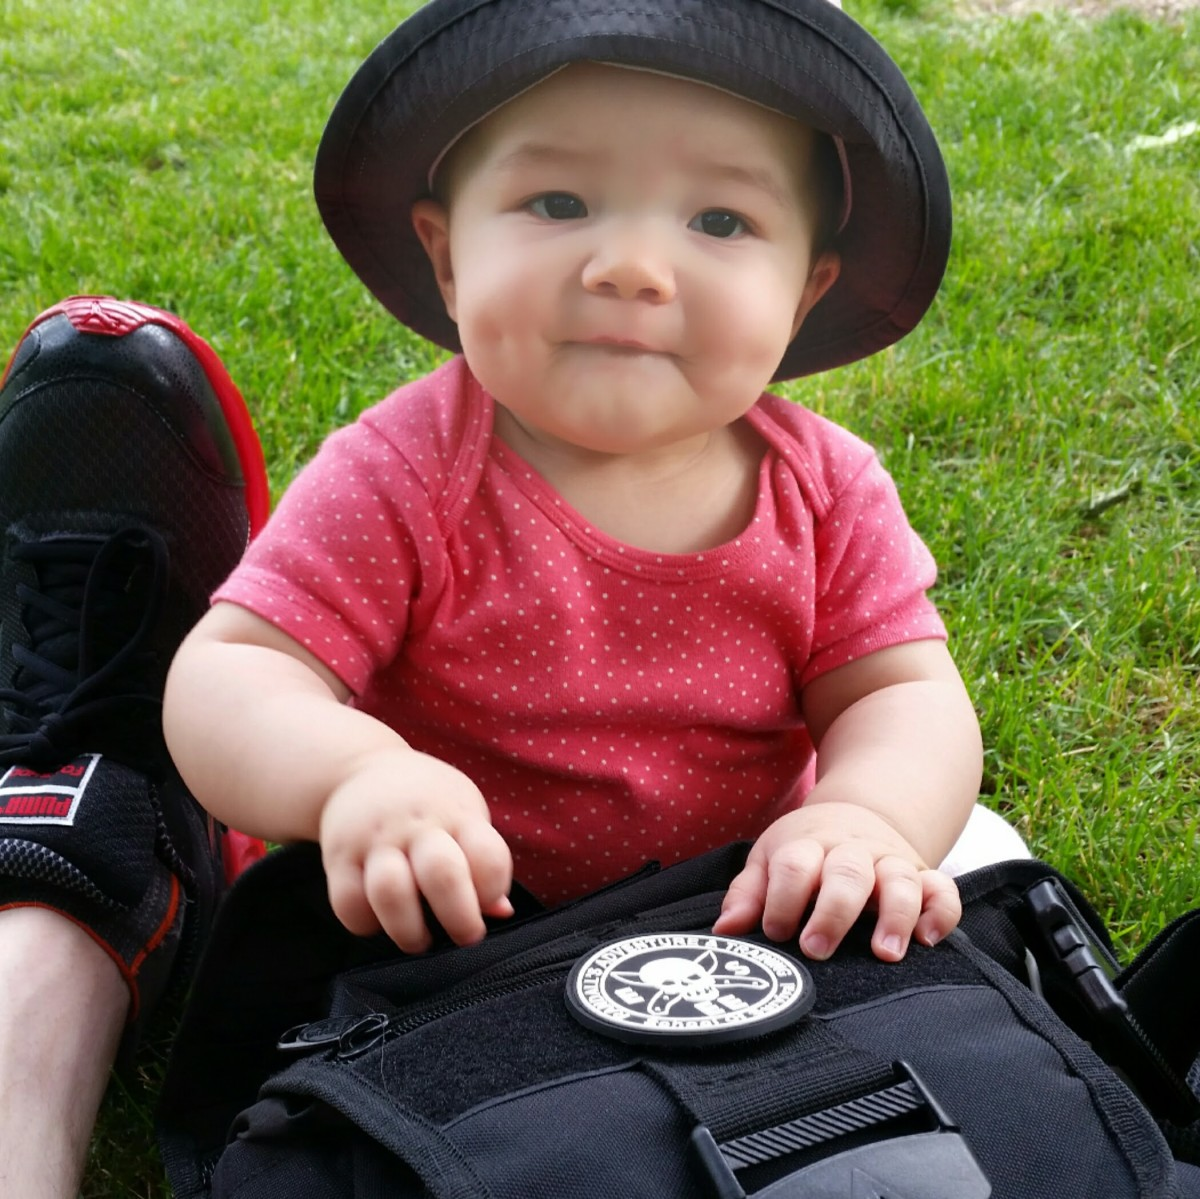 Adorable baby with tactical diaper bag.